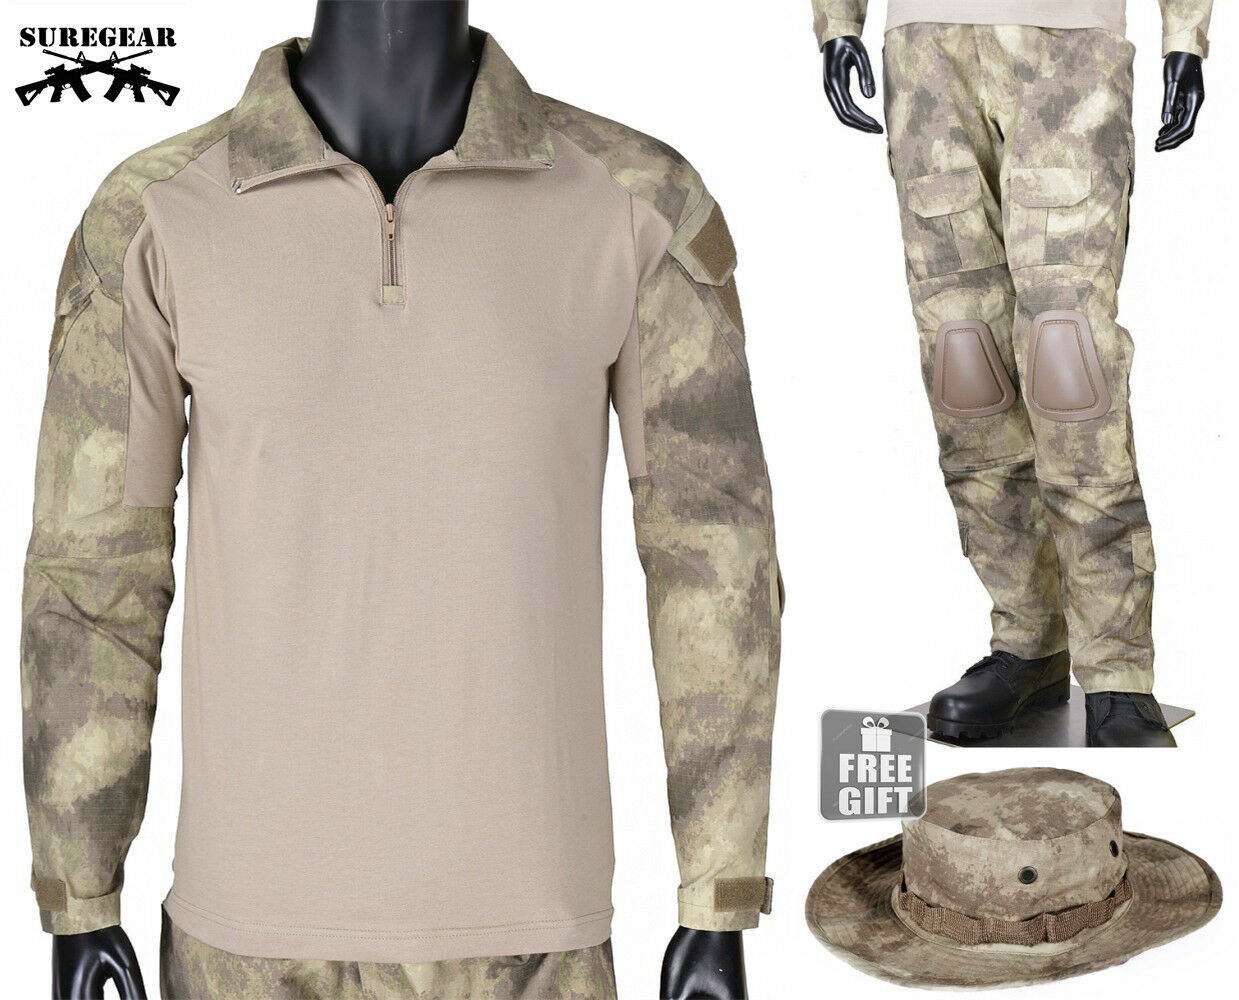 A-TACS AU Gen3 G3 Combat Suit Shirt Pants Military Army Airsoft Tactical Uniform